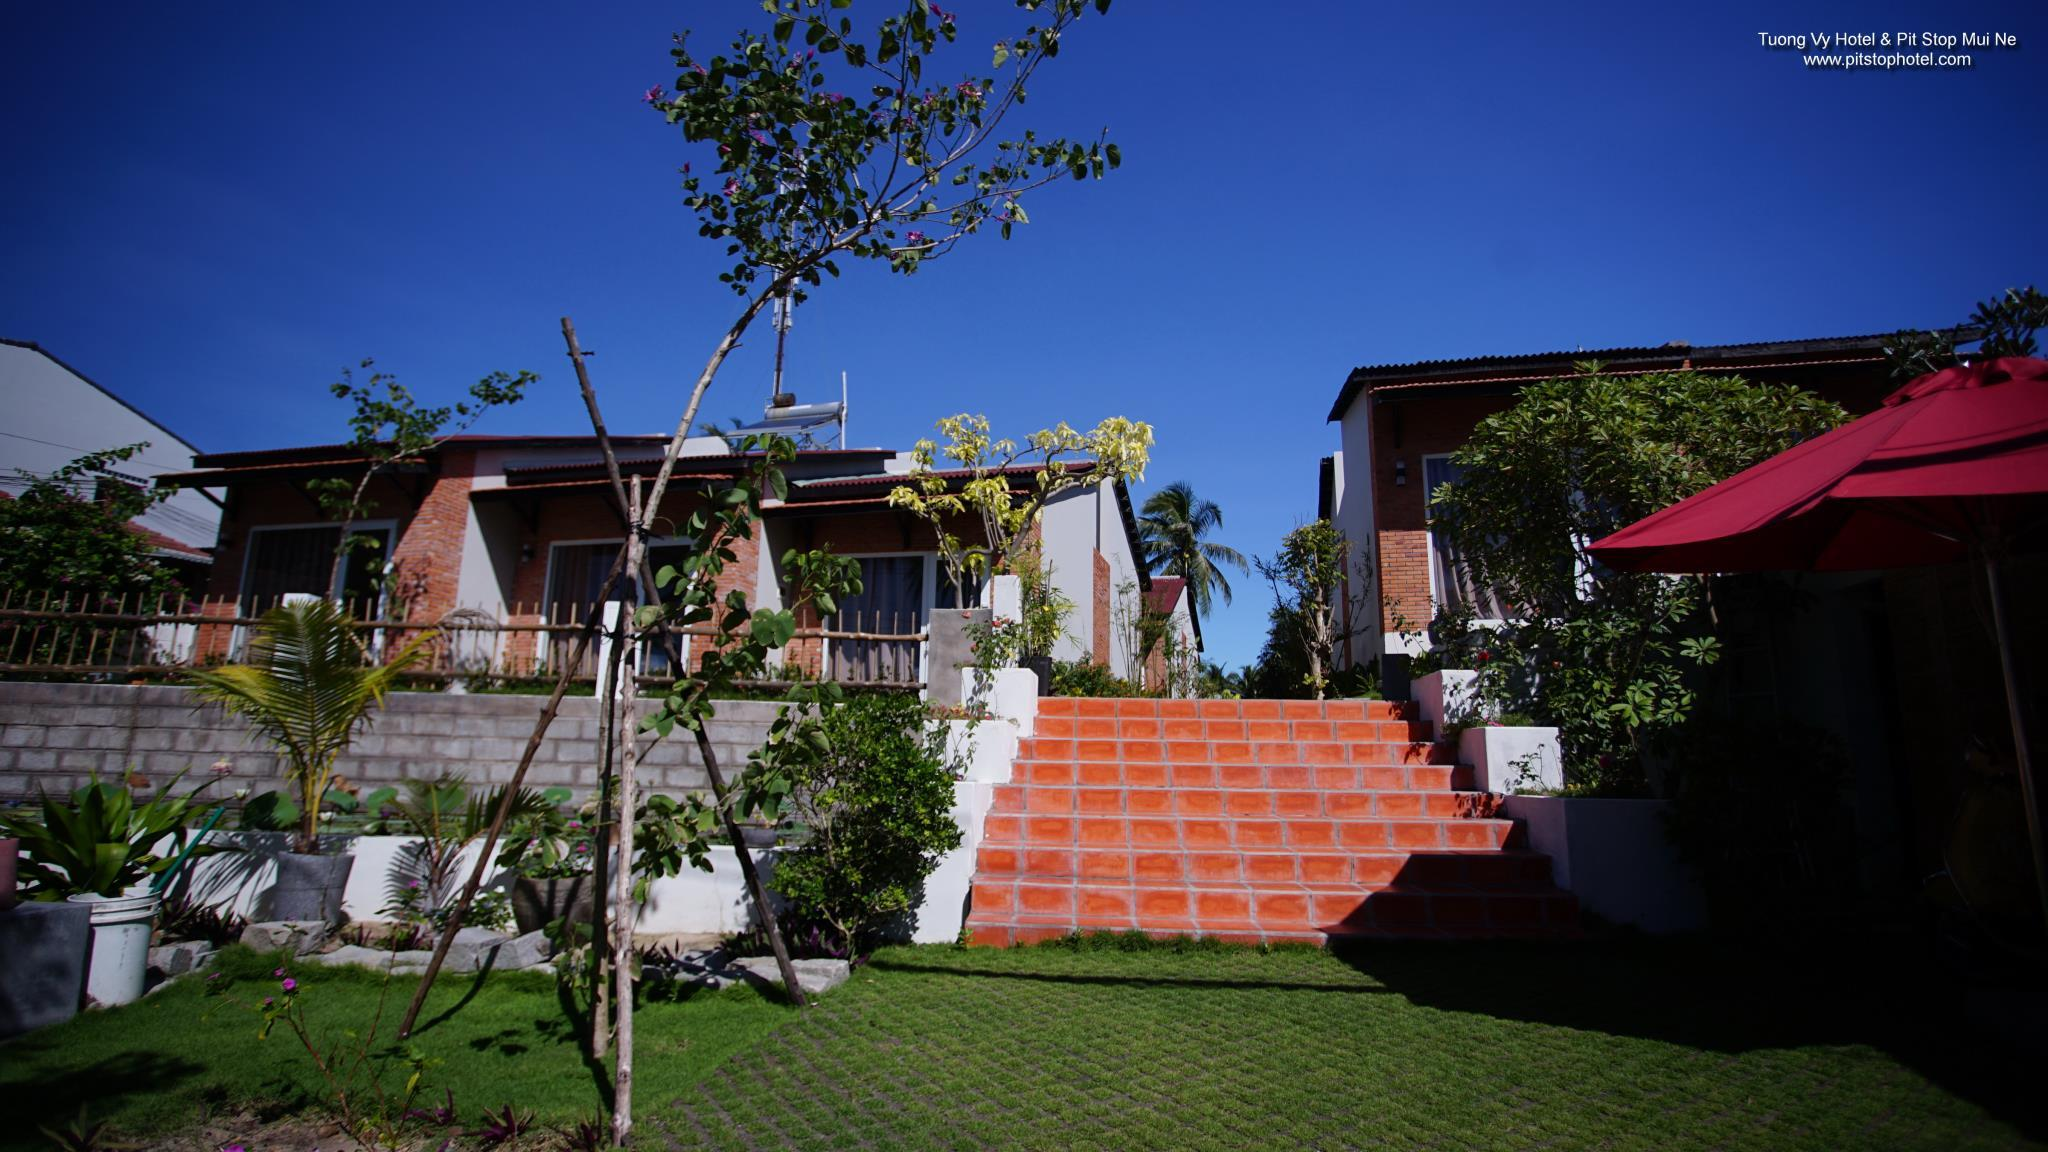 Tuong Vy Hotel And Pit Stop Mui Ne